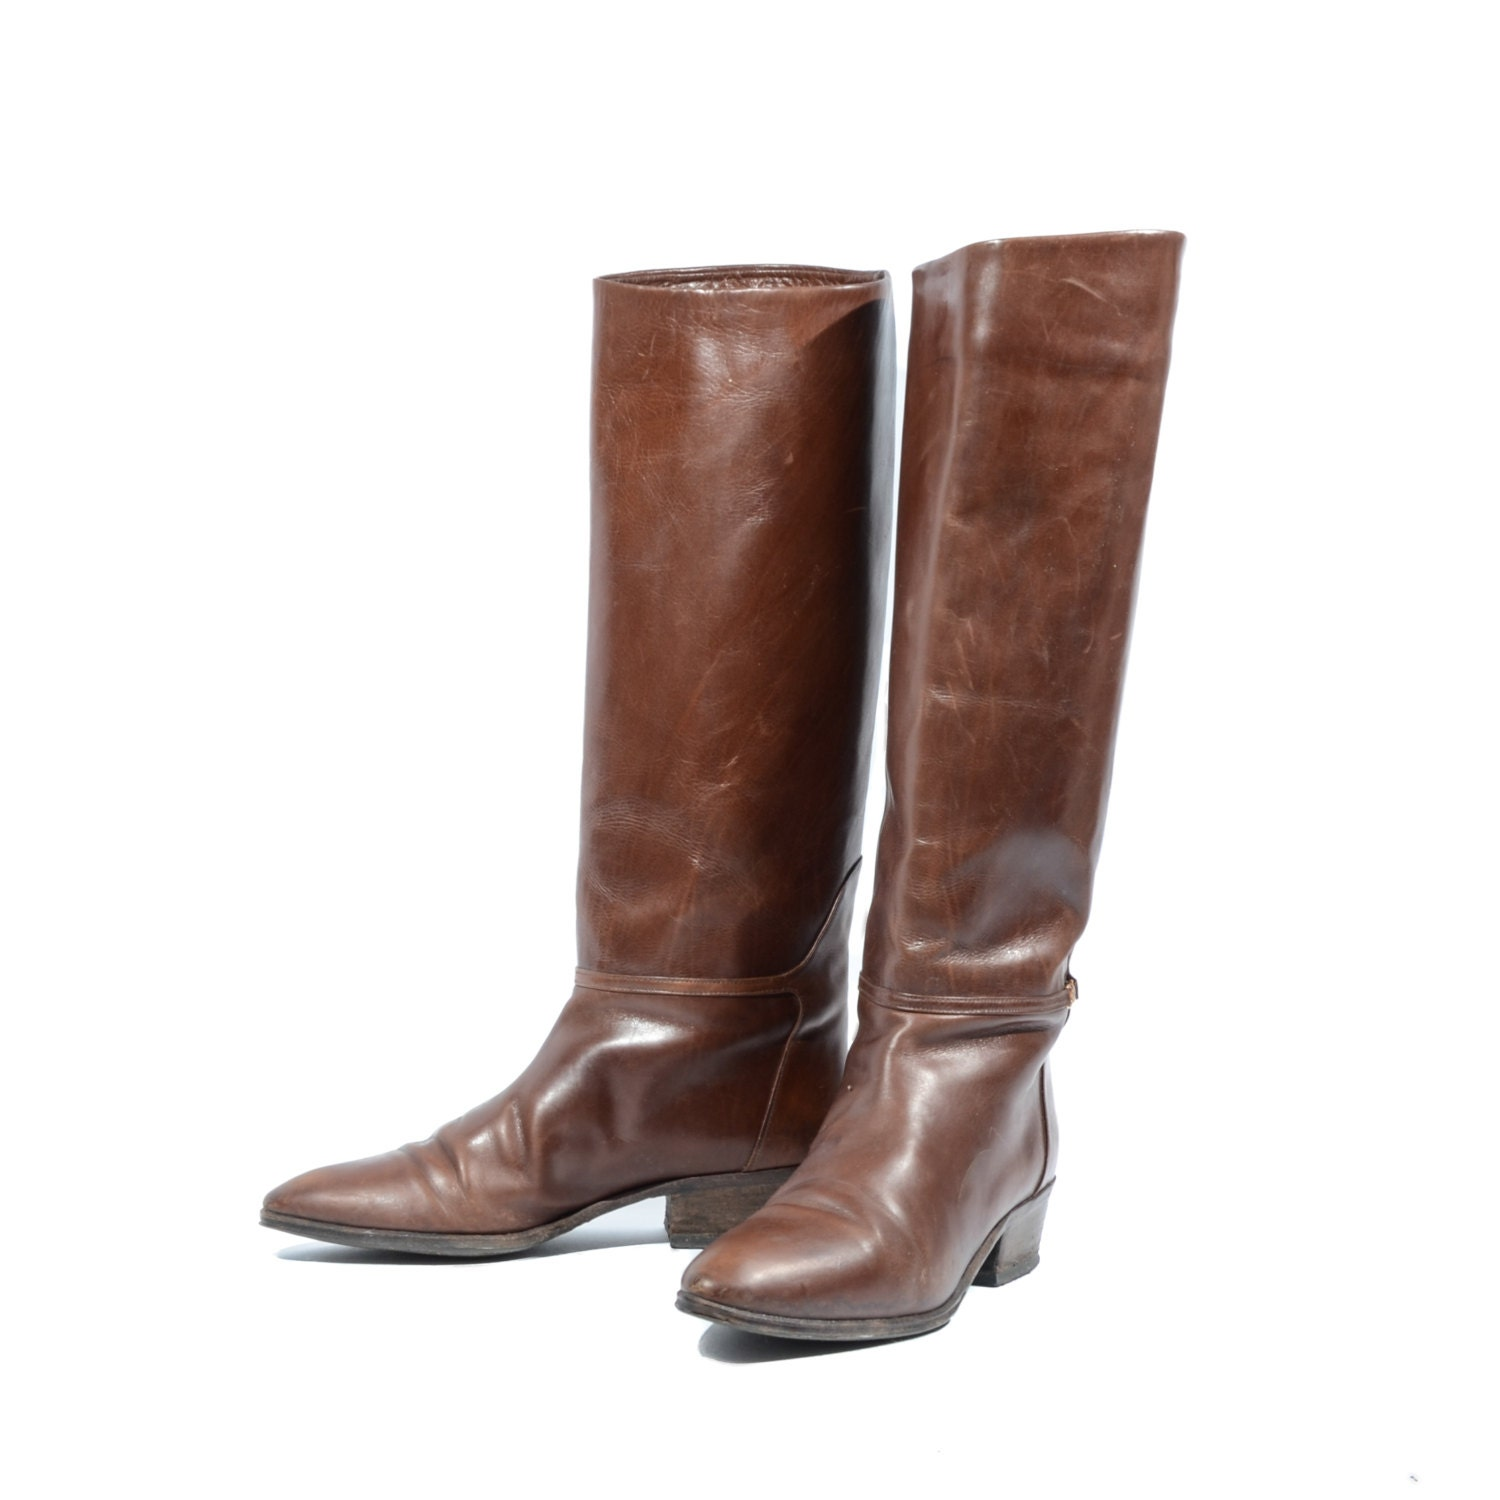 brown leather knee high boots equestrian fashion by